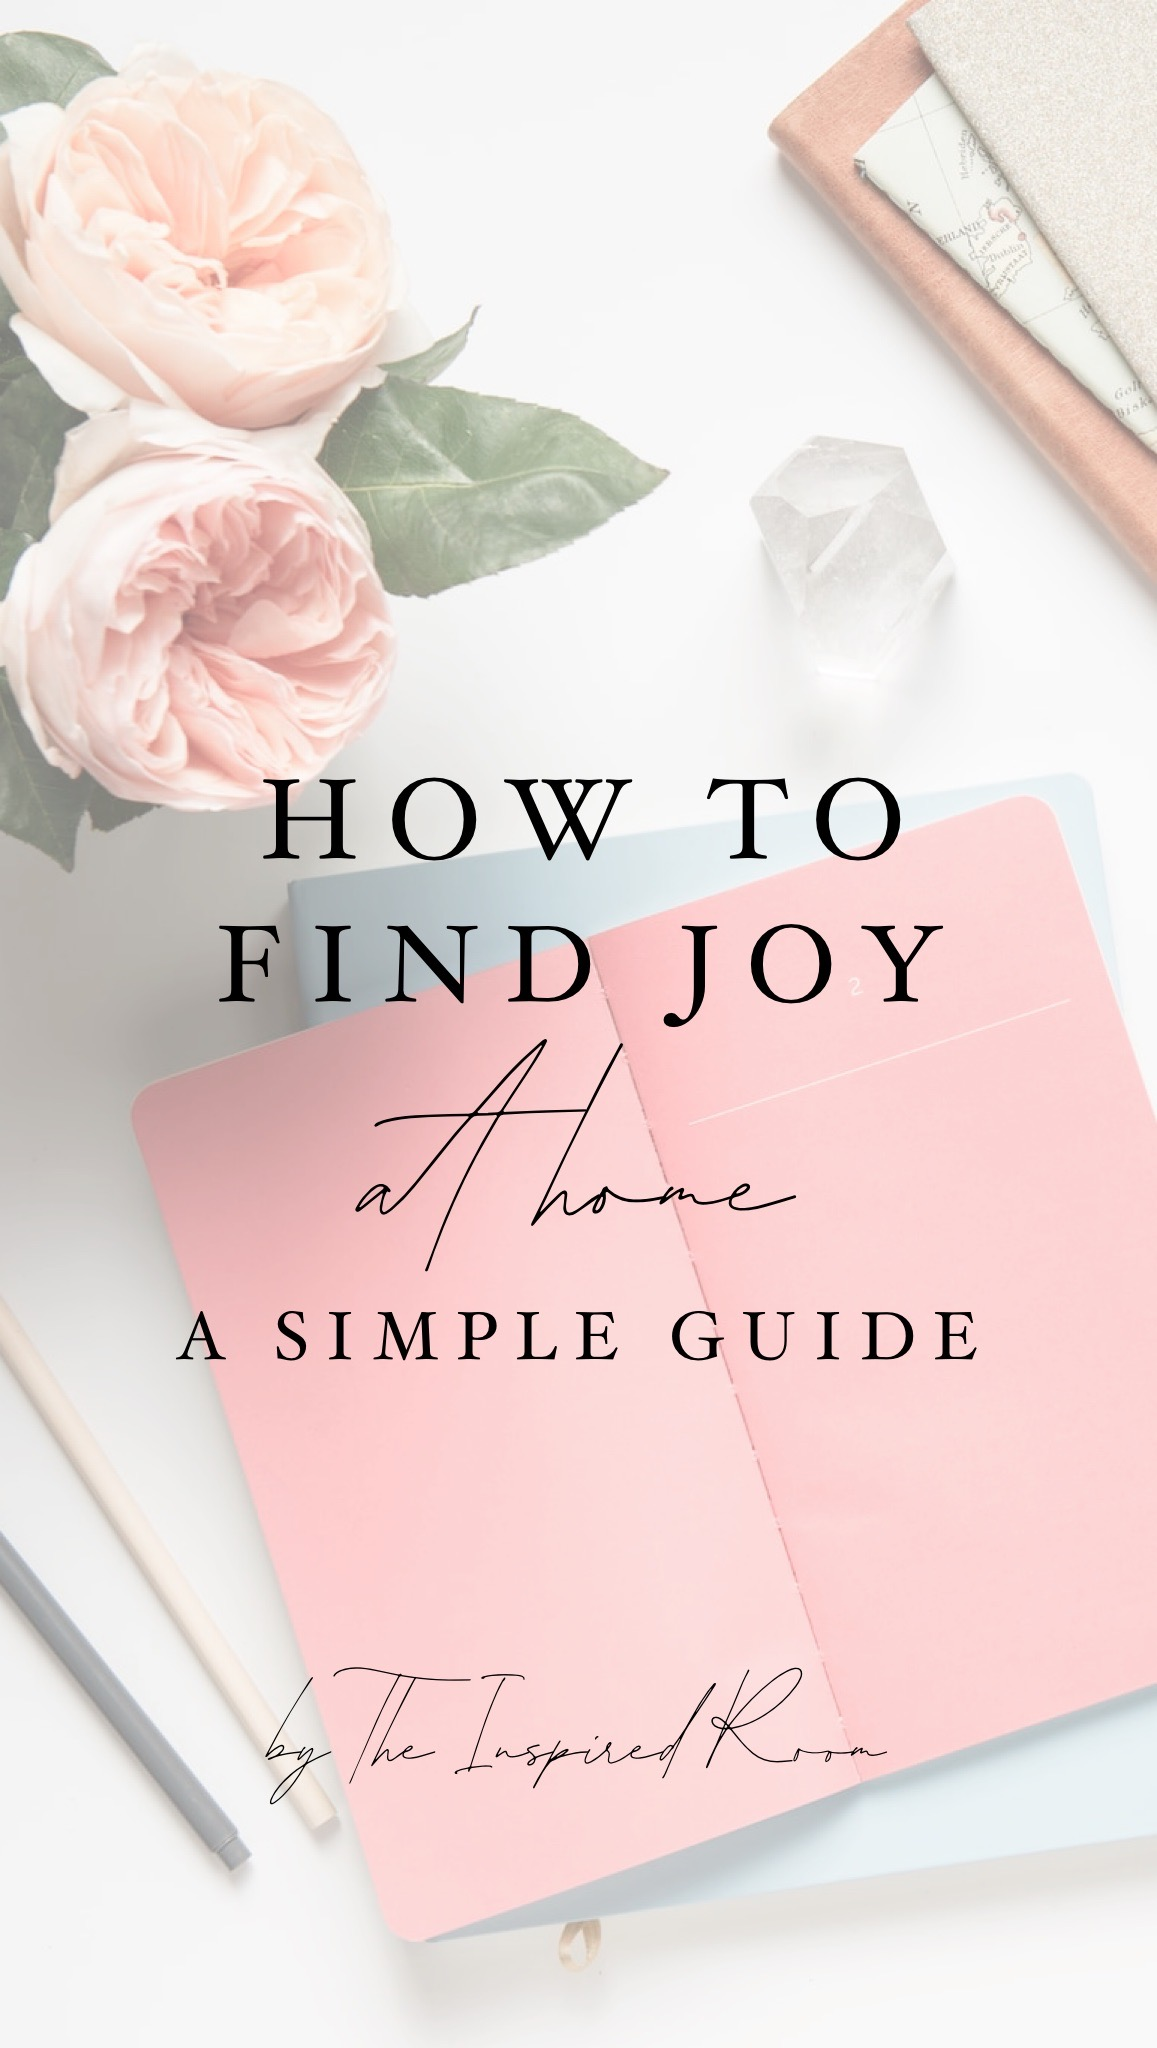 How To Find Joy At Home: A Simple Guide